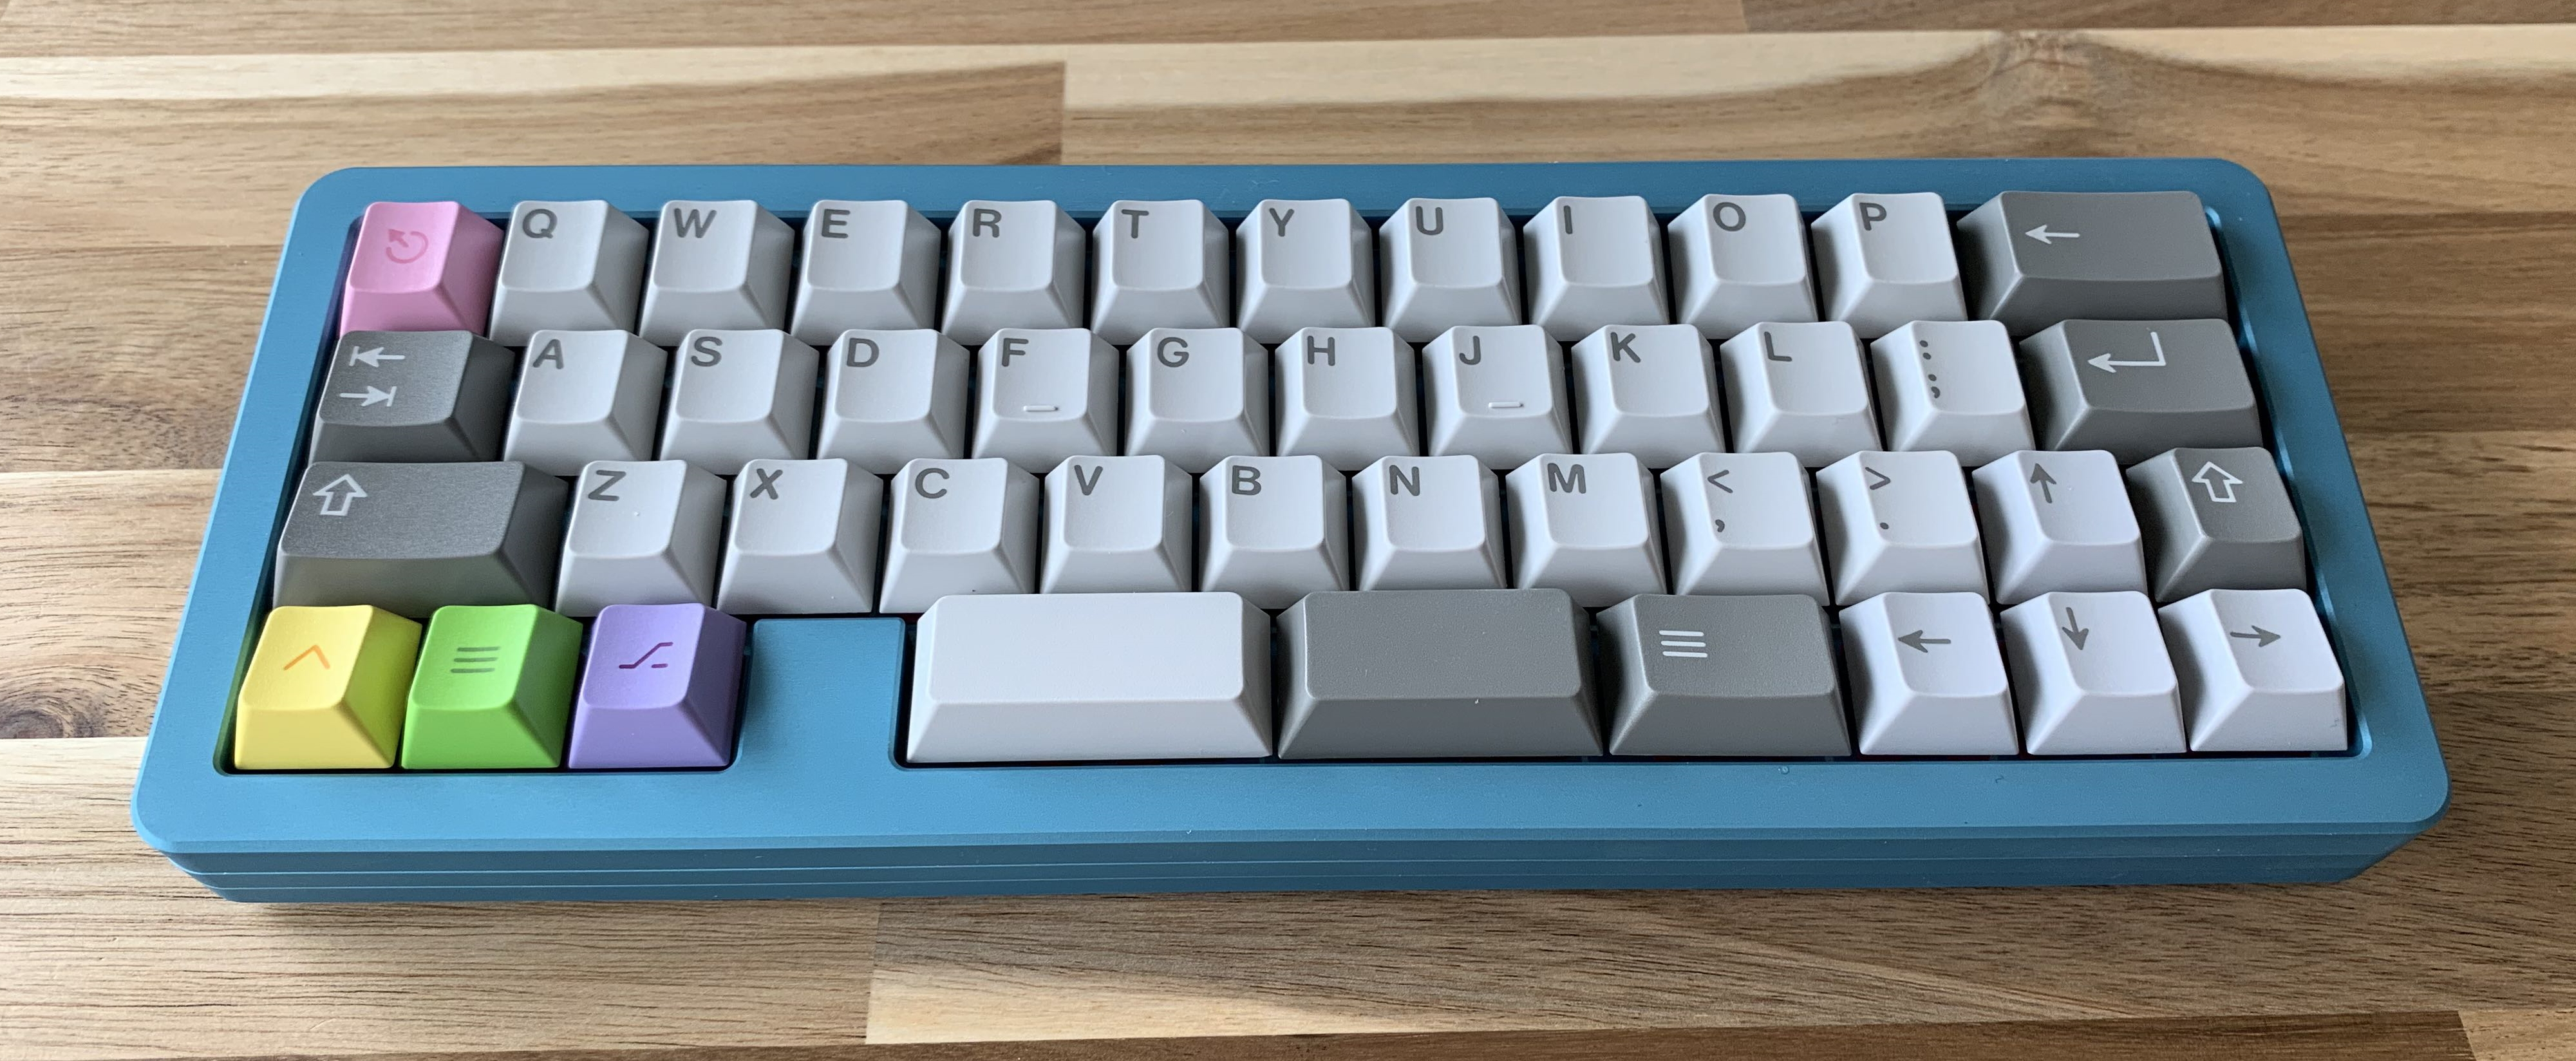 GMK Paperwork with an MHKB S-Type in Fabulous Teal